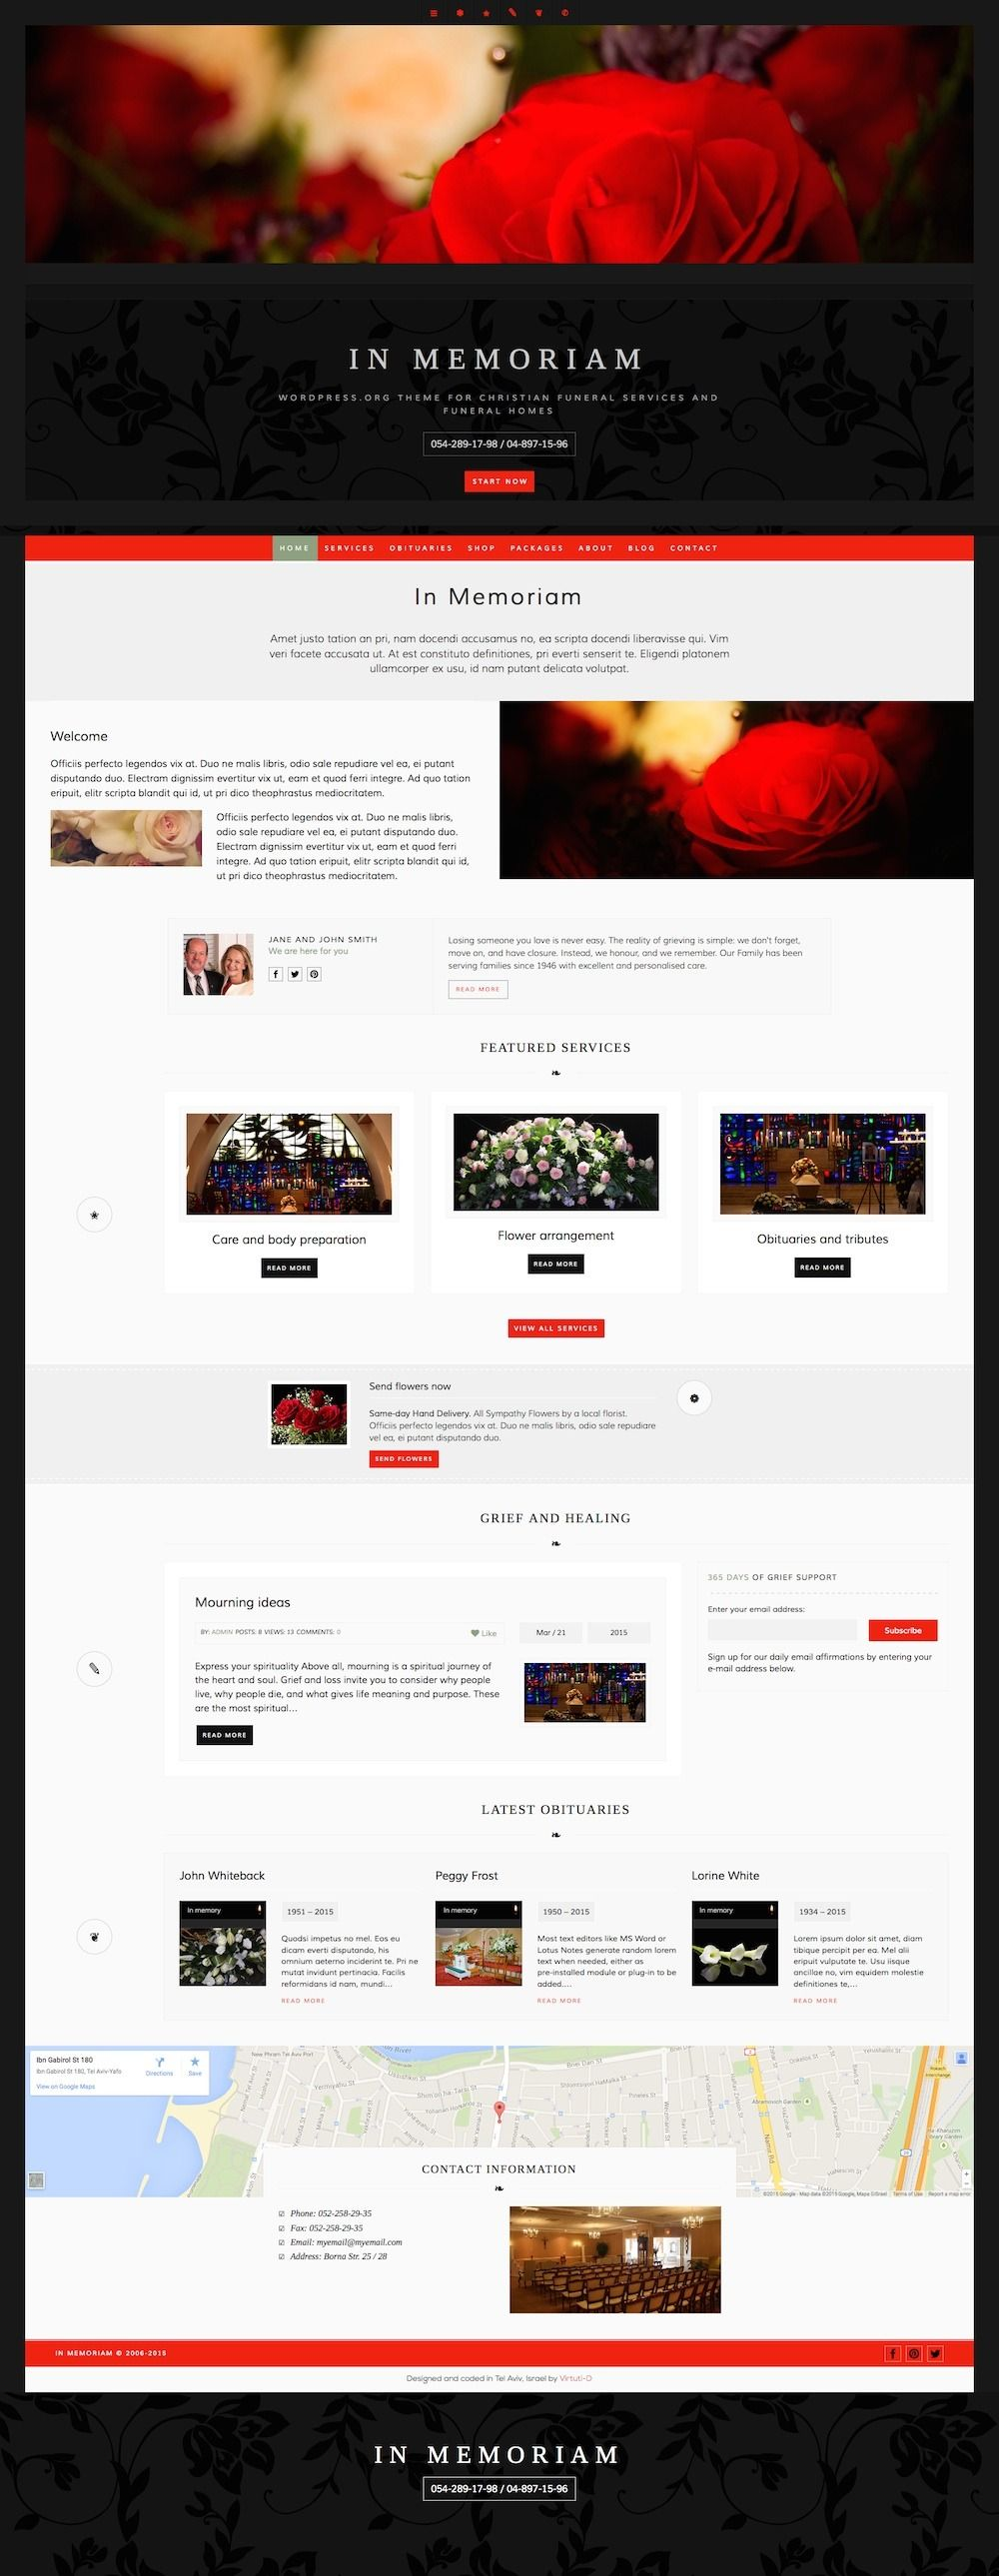 In Memoriam #WordPress theme was created especially for